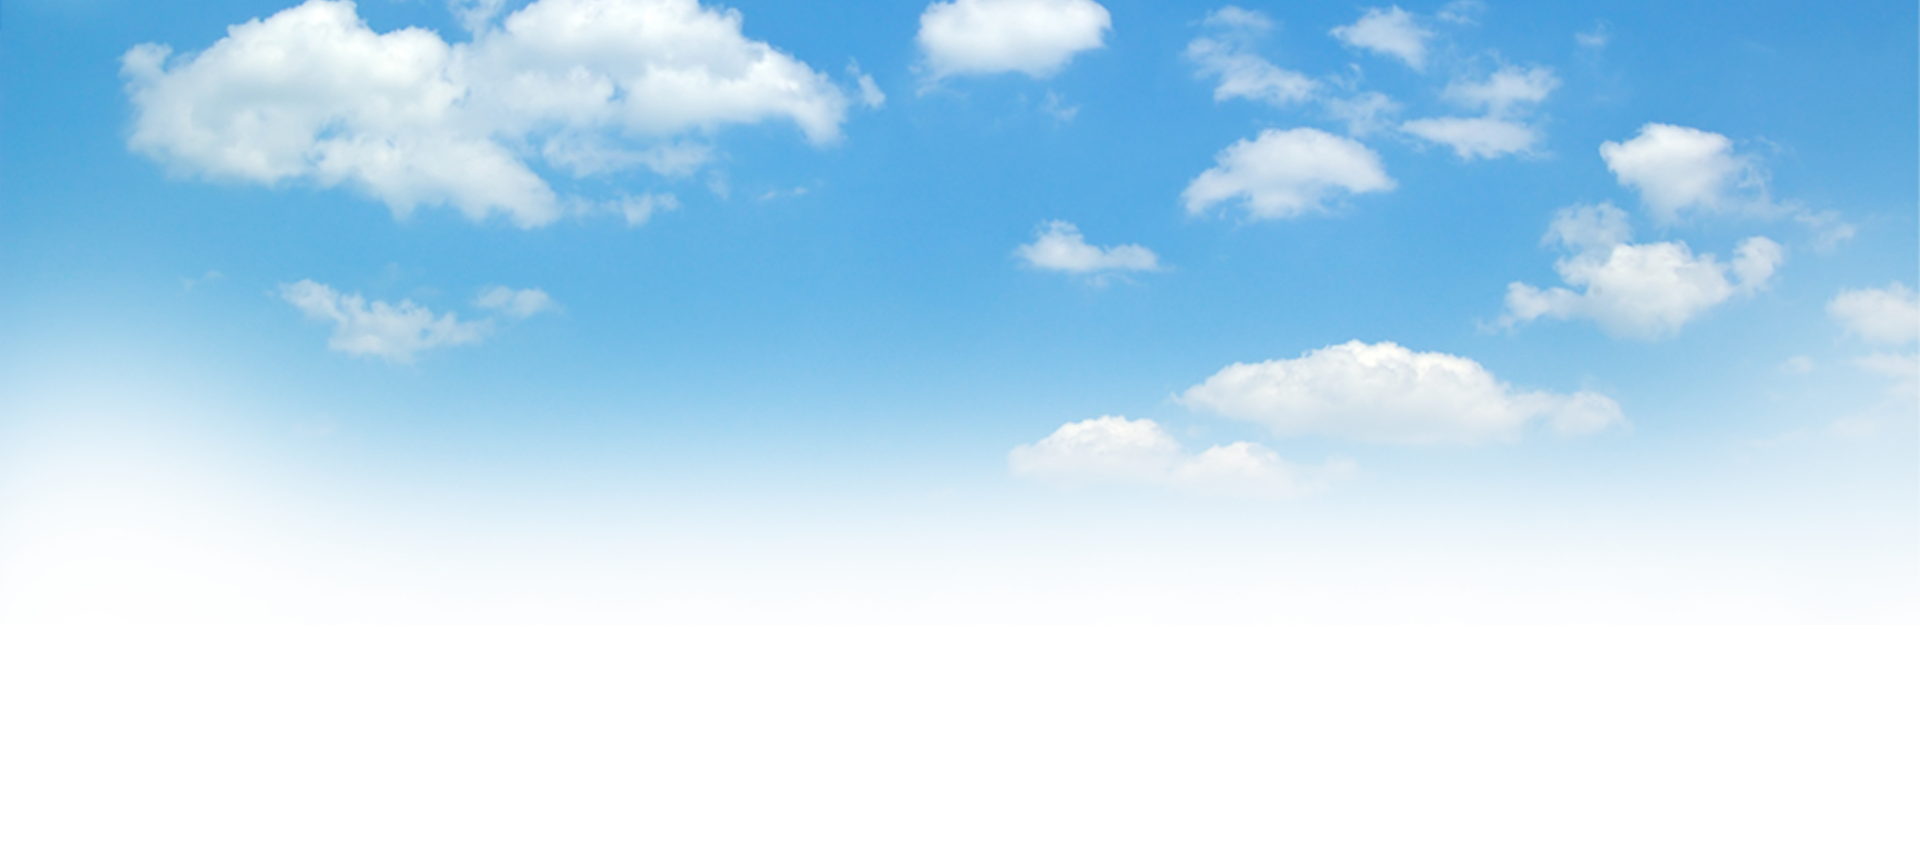 Sky and clouds png. Blue white transprent free